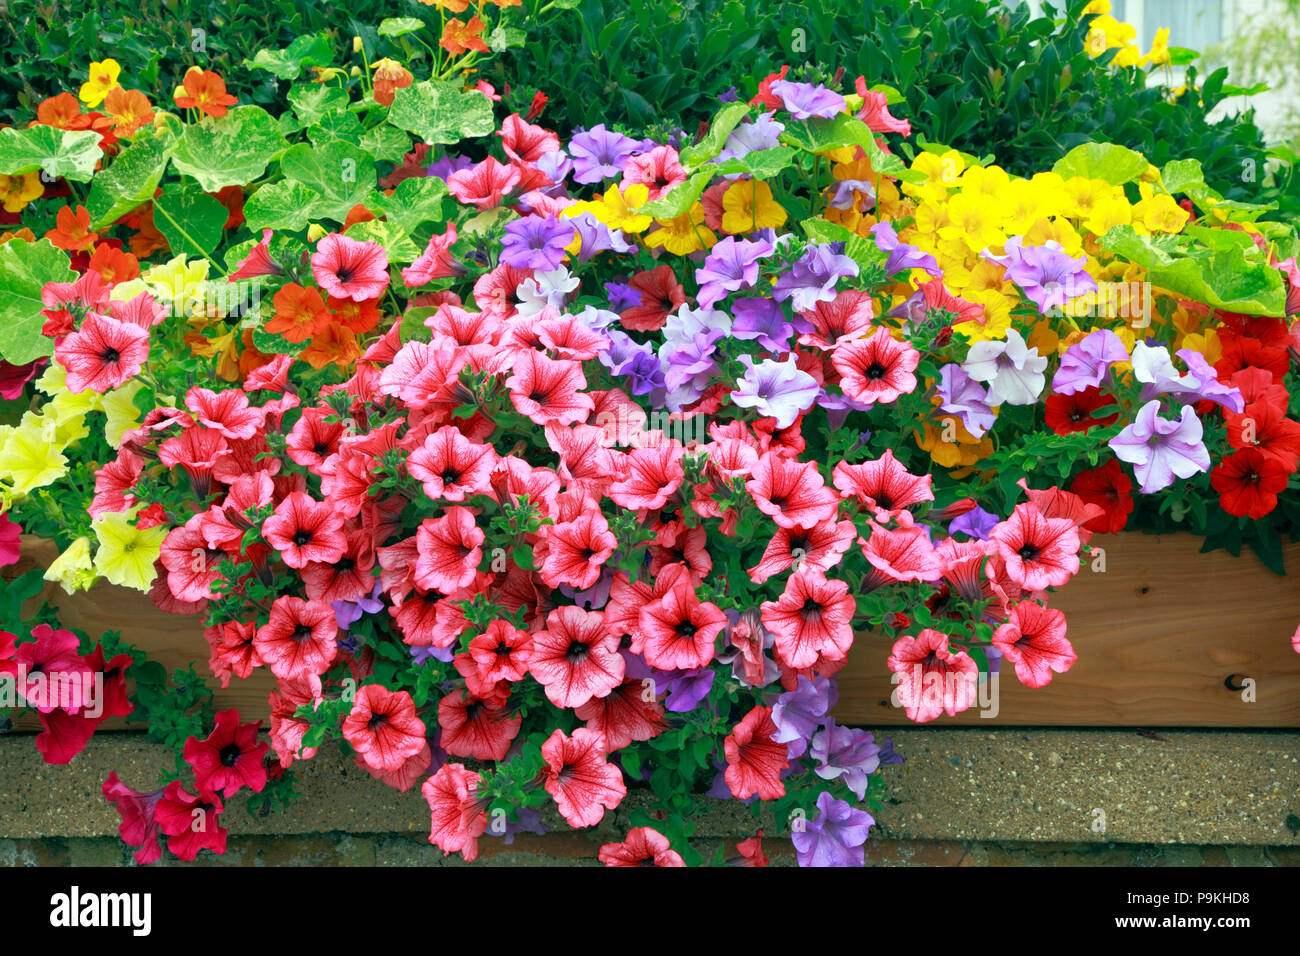 Petunia, Petunias, red, yellow, purple, pink, front garden wall, various colours - Stock Image